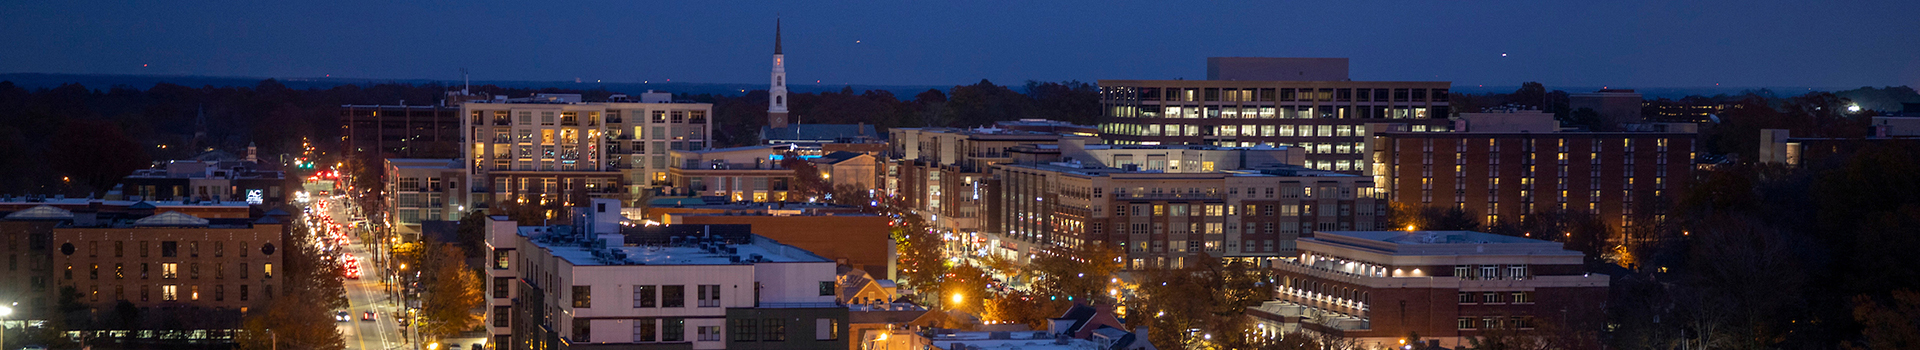 DOWNTOWN CHAPEL HILL AERIAL VIEW AT NIGHT